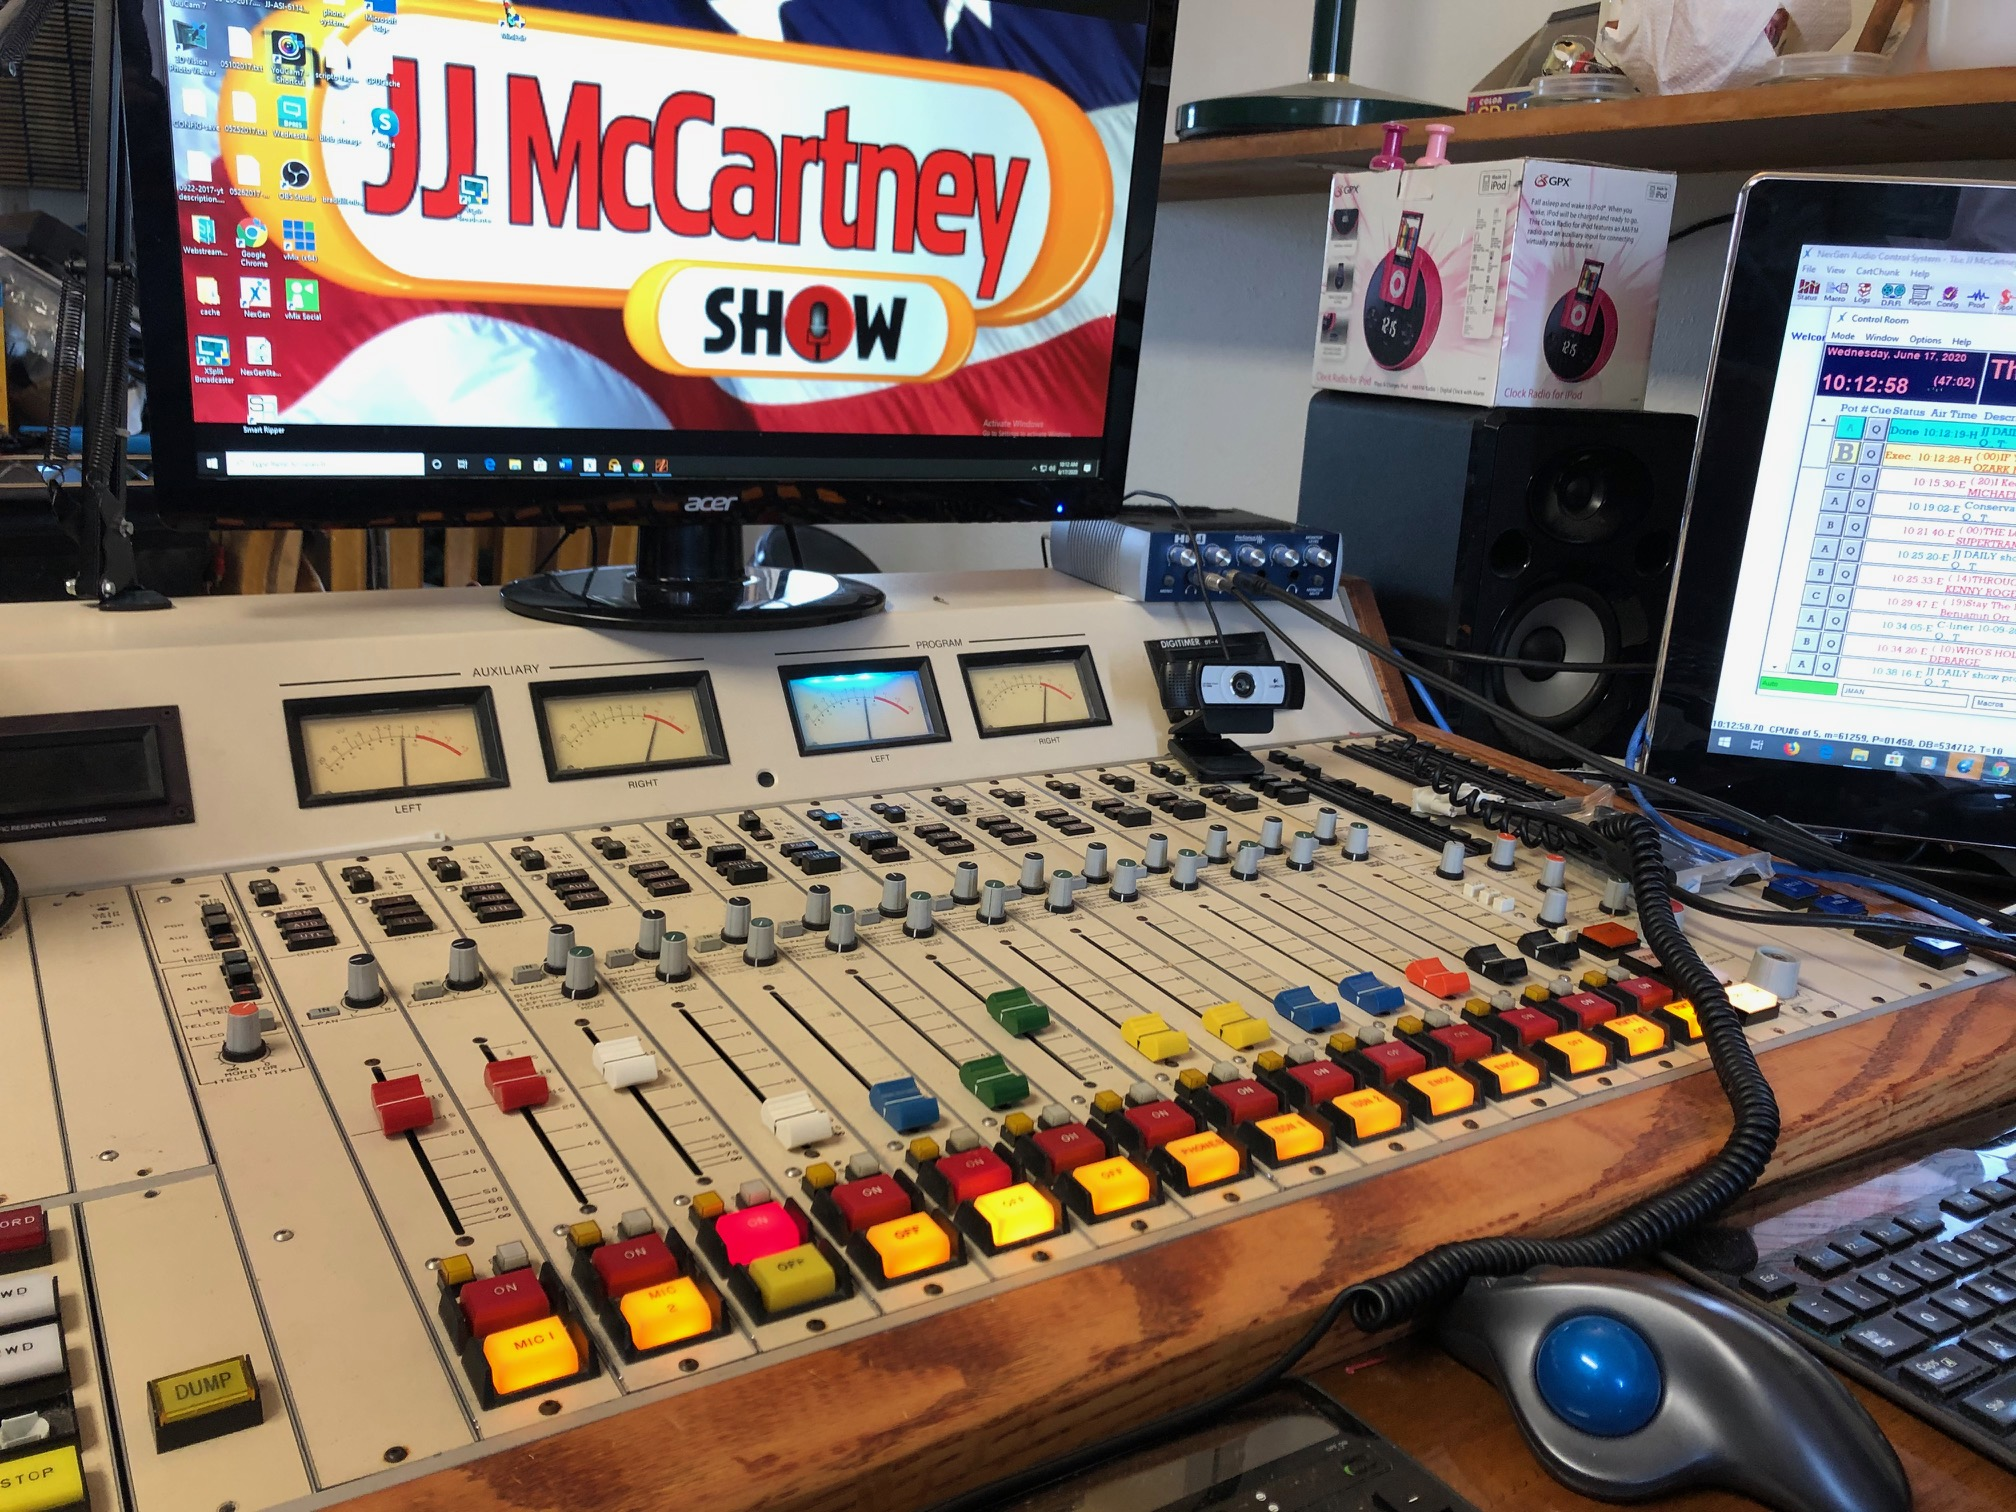 ONE WEEK TO GO: Tuesday October 27th 2020: JJ McCartney is LIVE 3-5pm ET